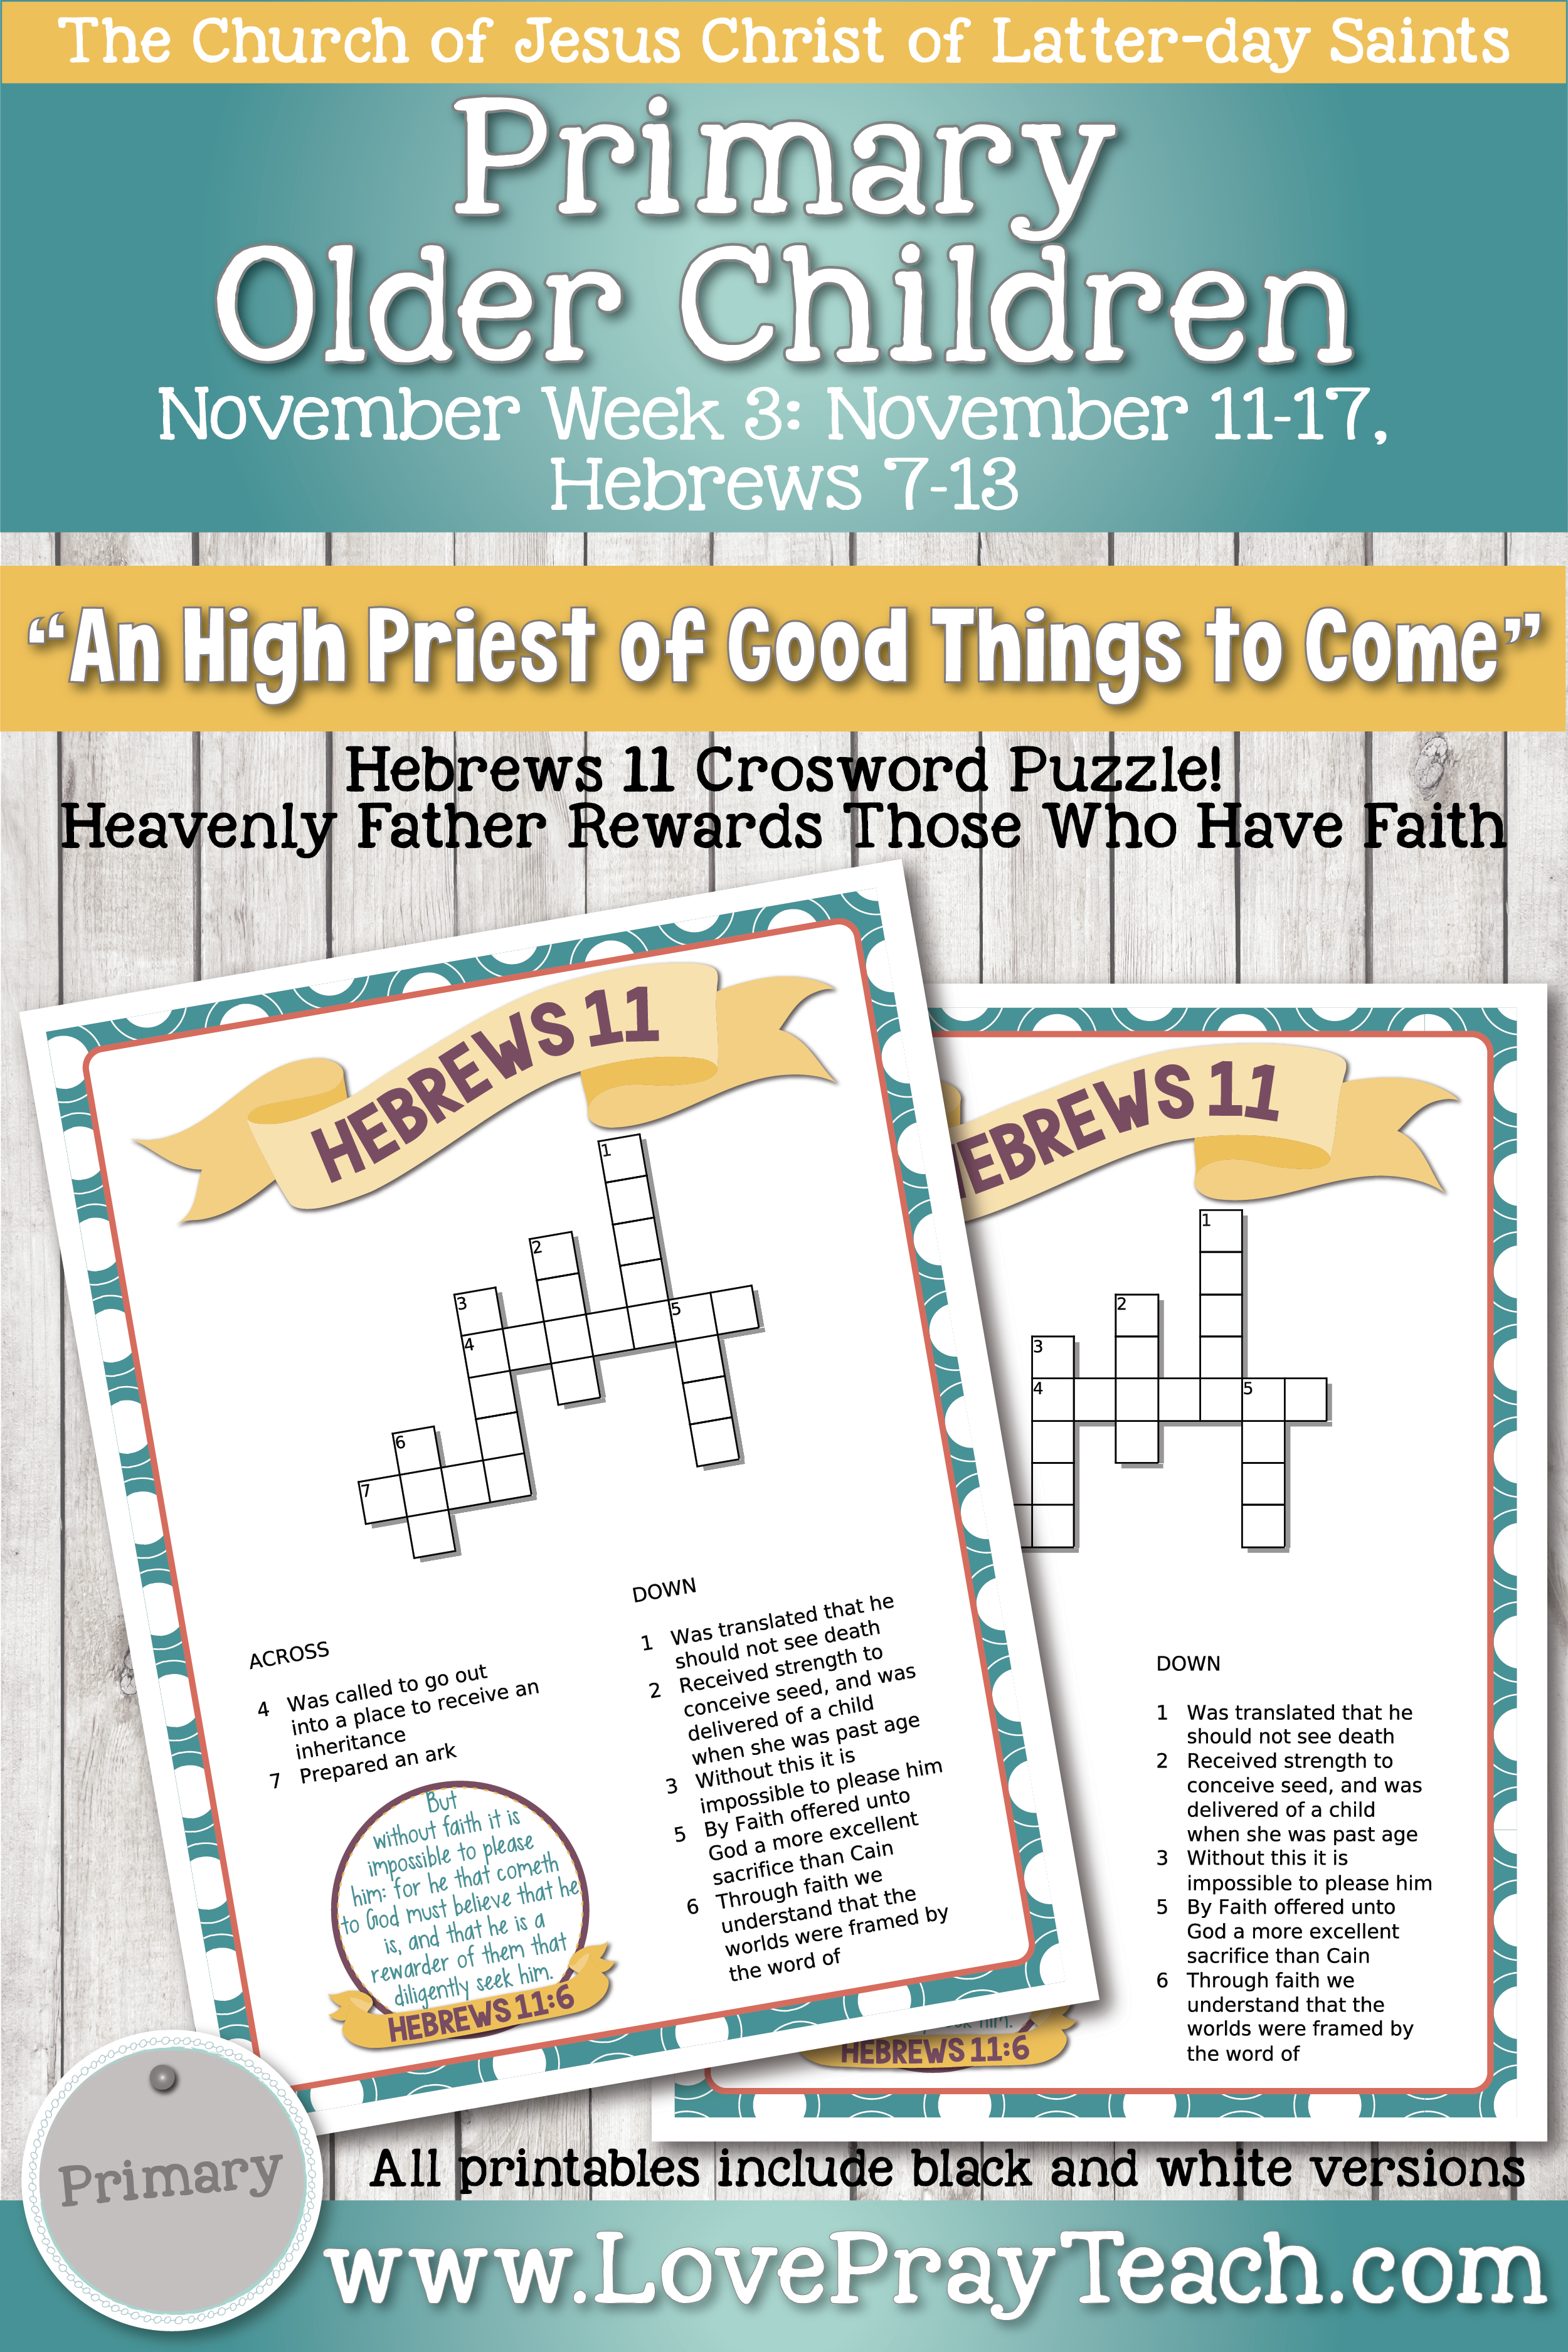 """Come, Follow Me for Primary 2019- New Testament, November Week 3: November 11-17, Hebrews 7-13; """"An High Priest Of Good Things To Come"""" OLDER CHILDREN"""